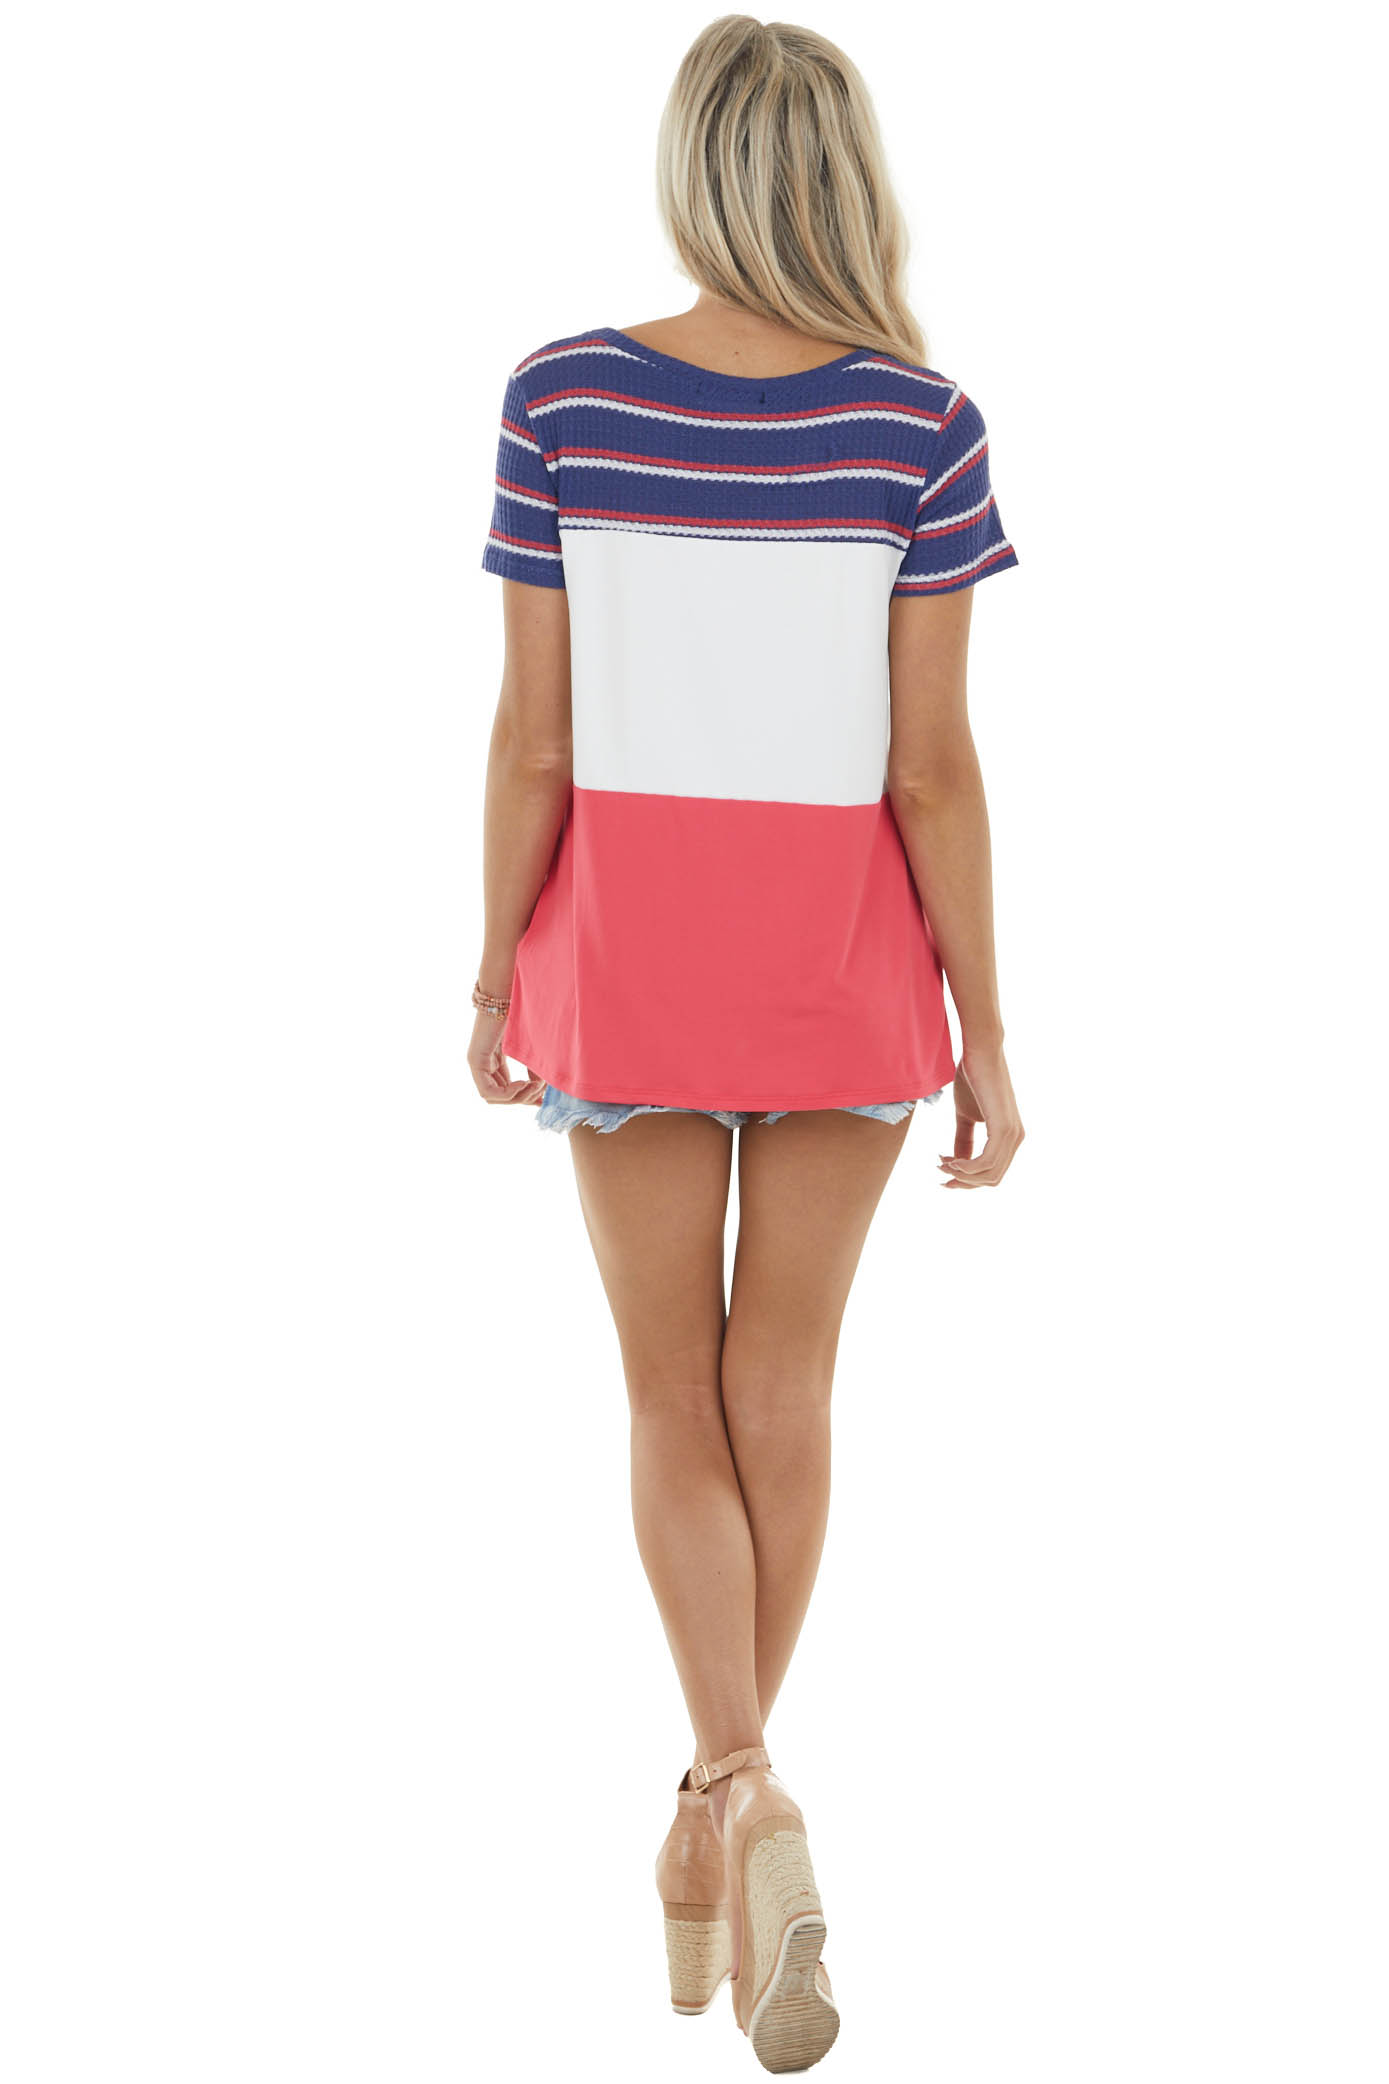 Catalina Blue and Ruby Colorblock Waffle Knit Contrast Top